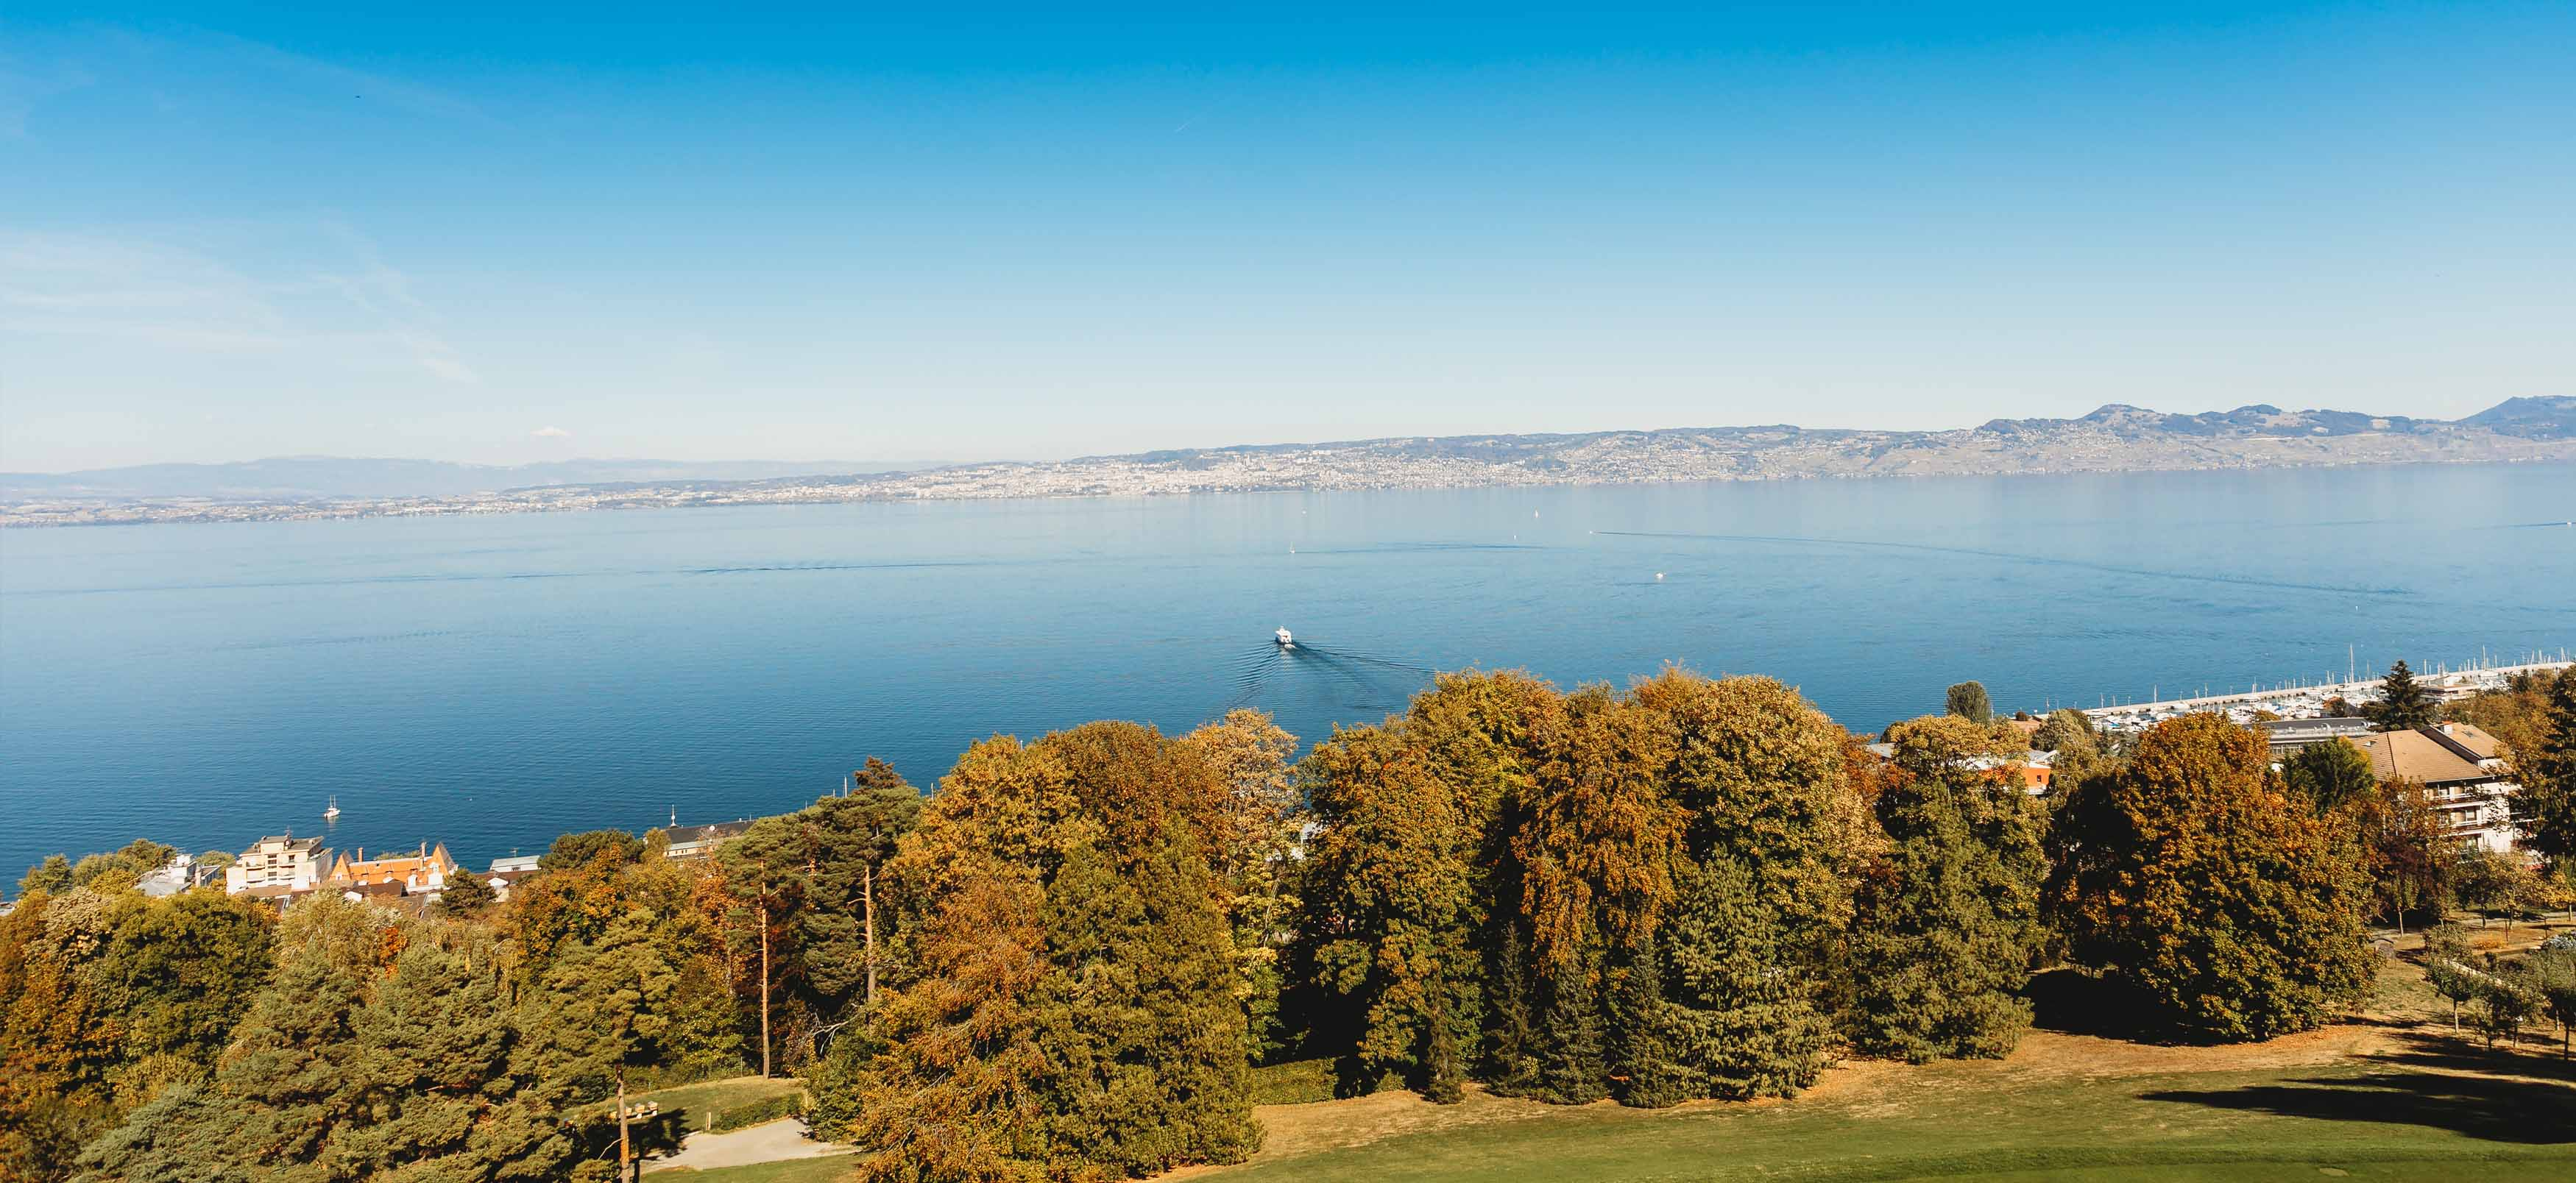 Chemin Cheminée Passion Prix Registration Confirmation To Evian Resort S Communications